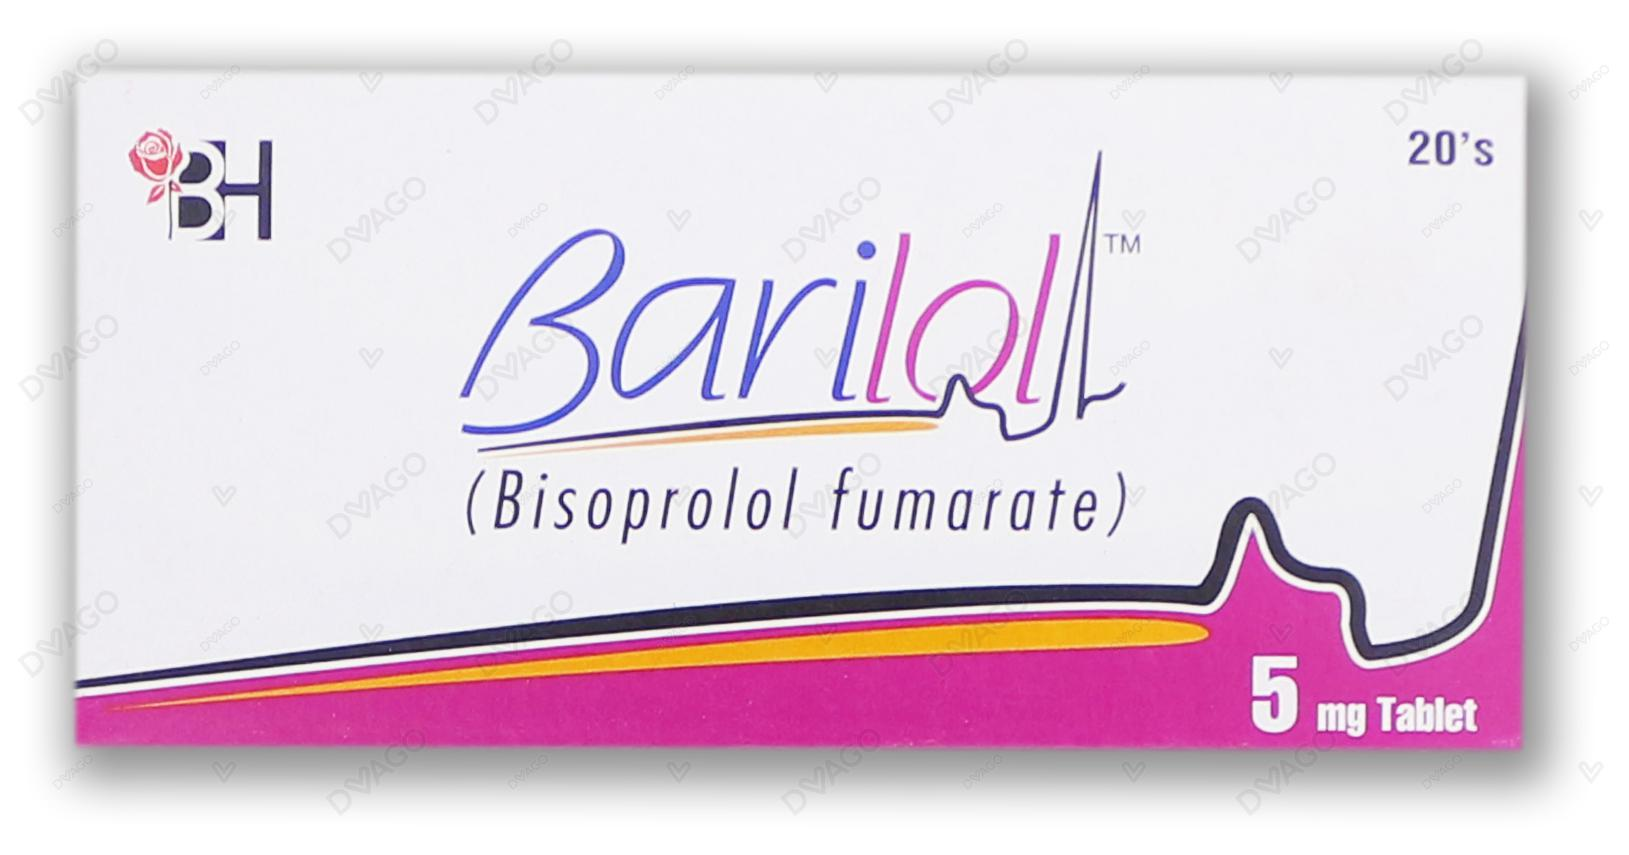 Barilol 5mg Tablet